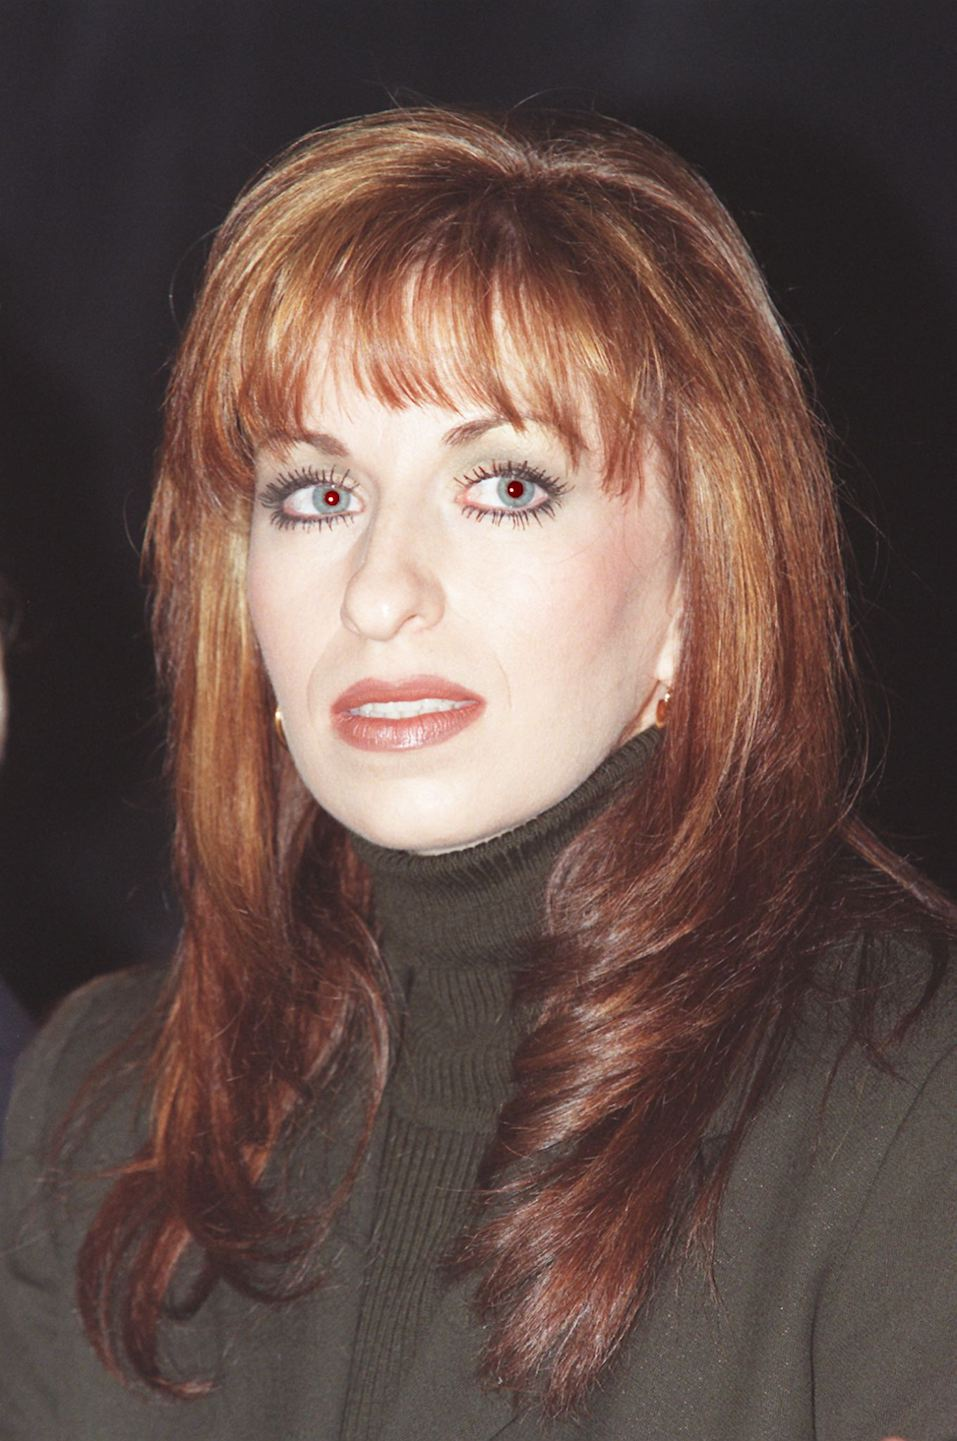 Paula Jones, who has accused US President Bill Clinton of sexual harrassment